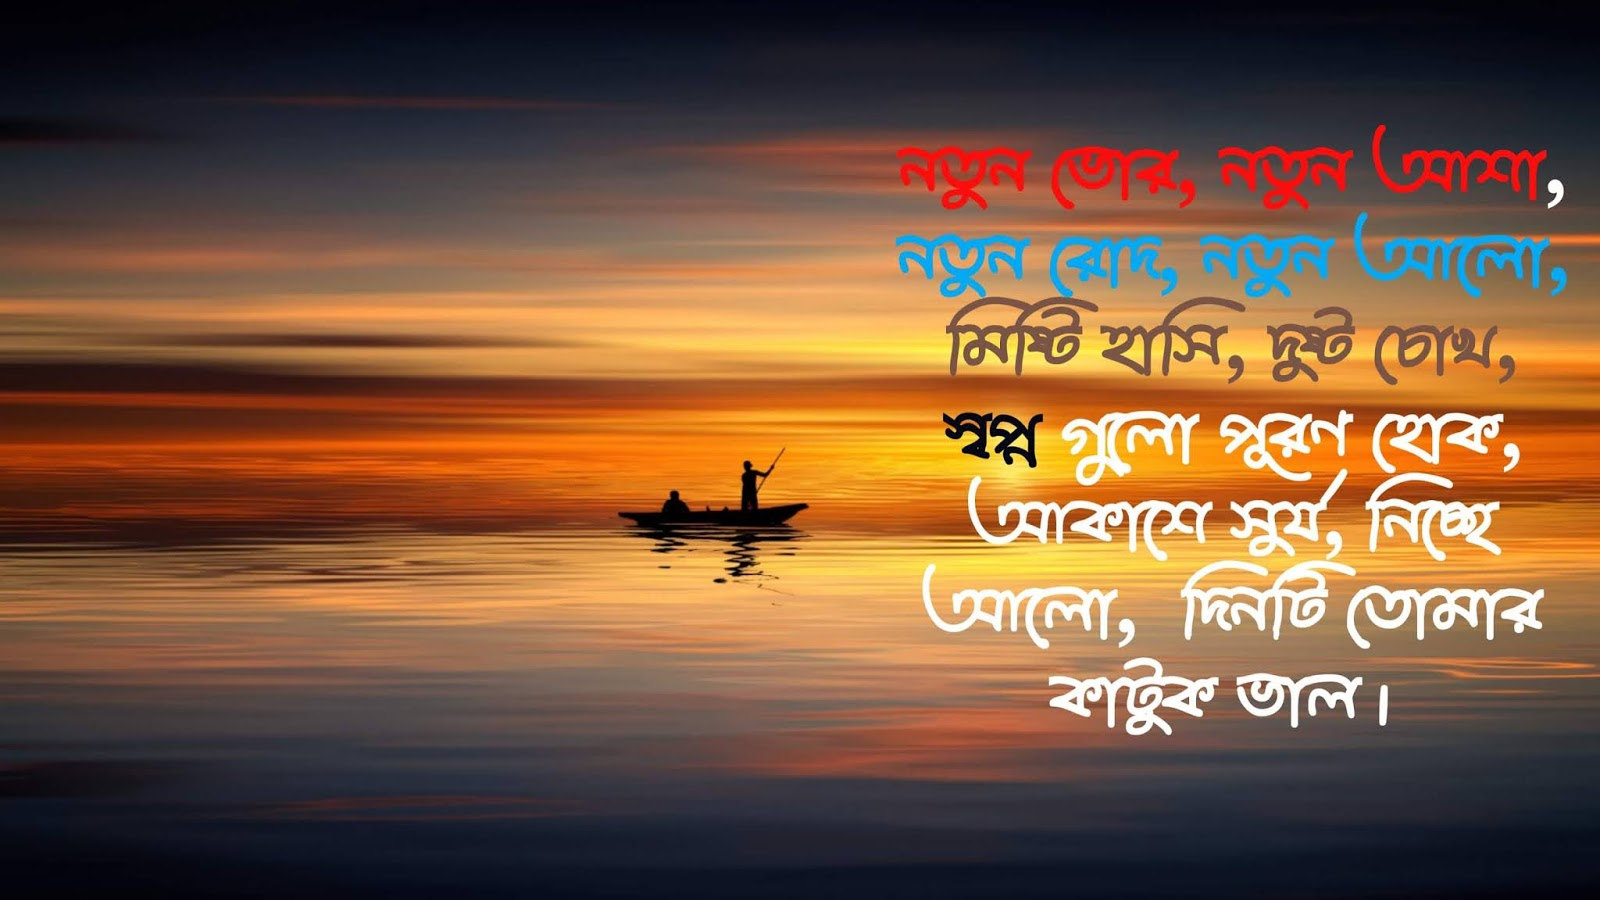 good morning in bengali image